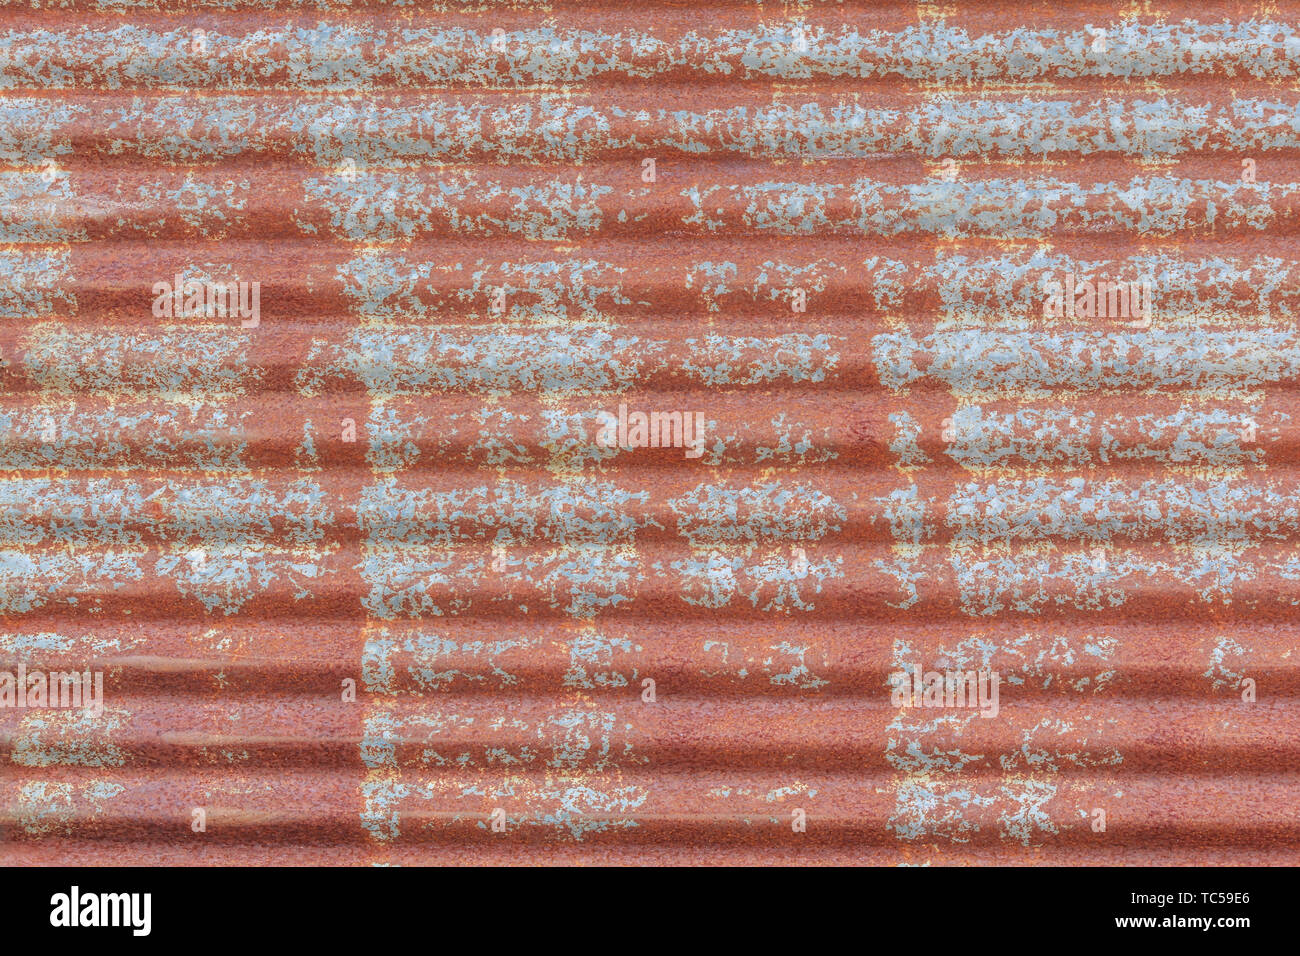 Rusted galvanized iron plate texture - Stock Image